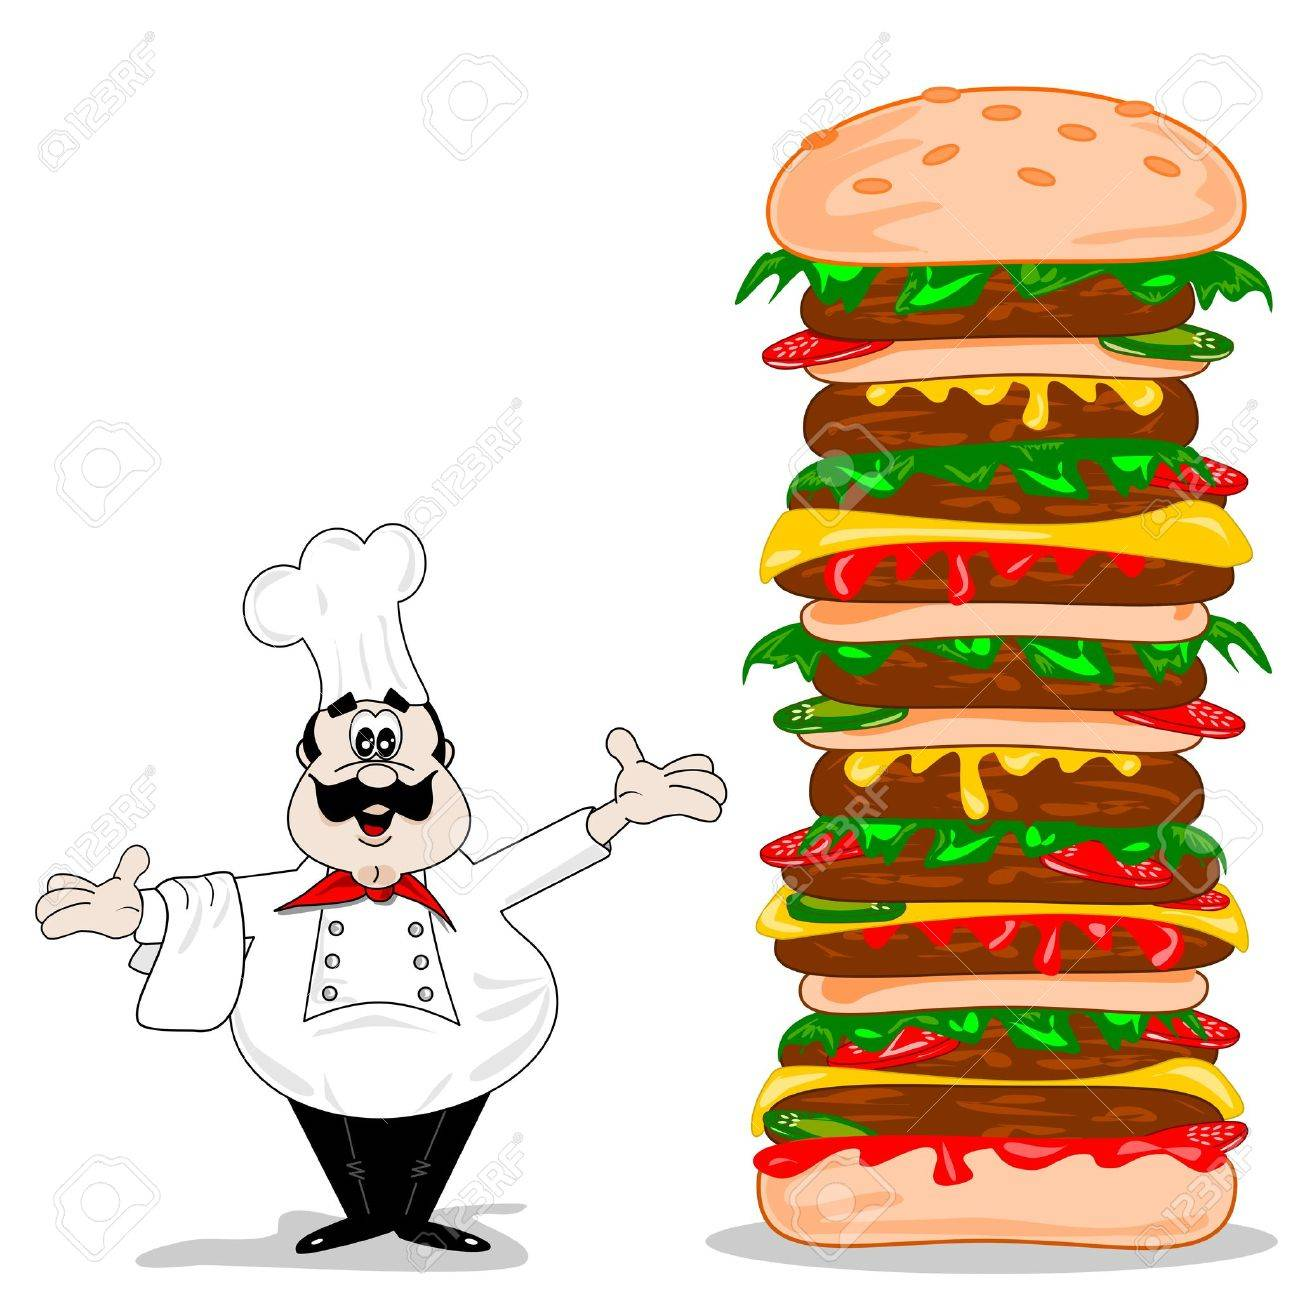 Chef Cartoon Stock Photos Pictures Royalty Free Chef Cartoon